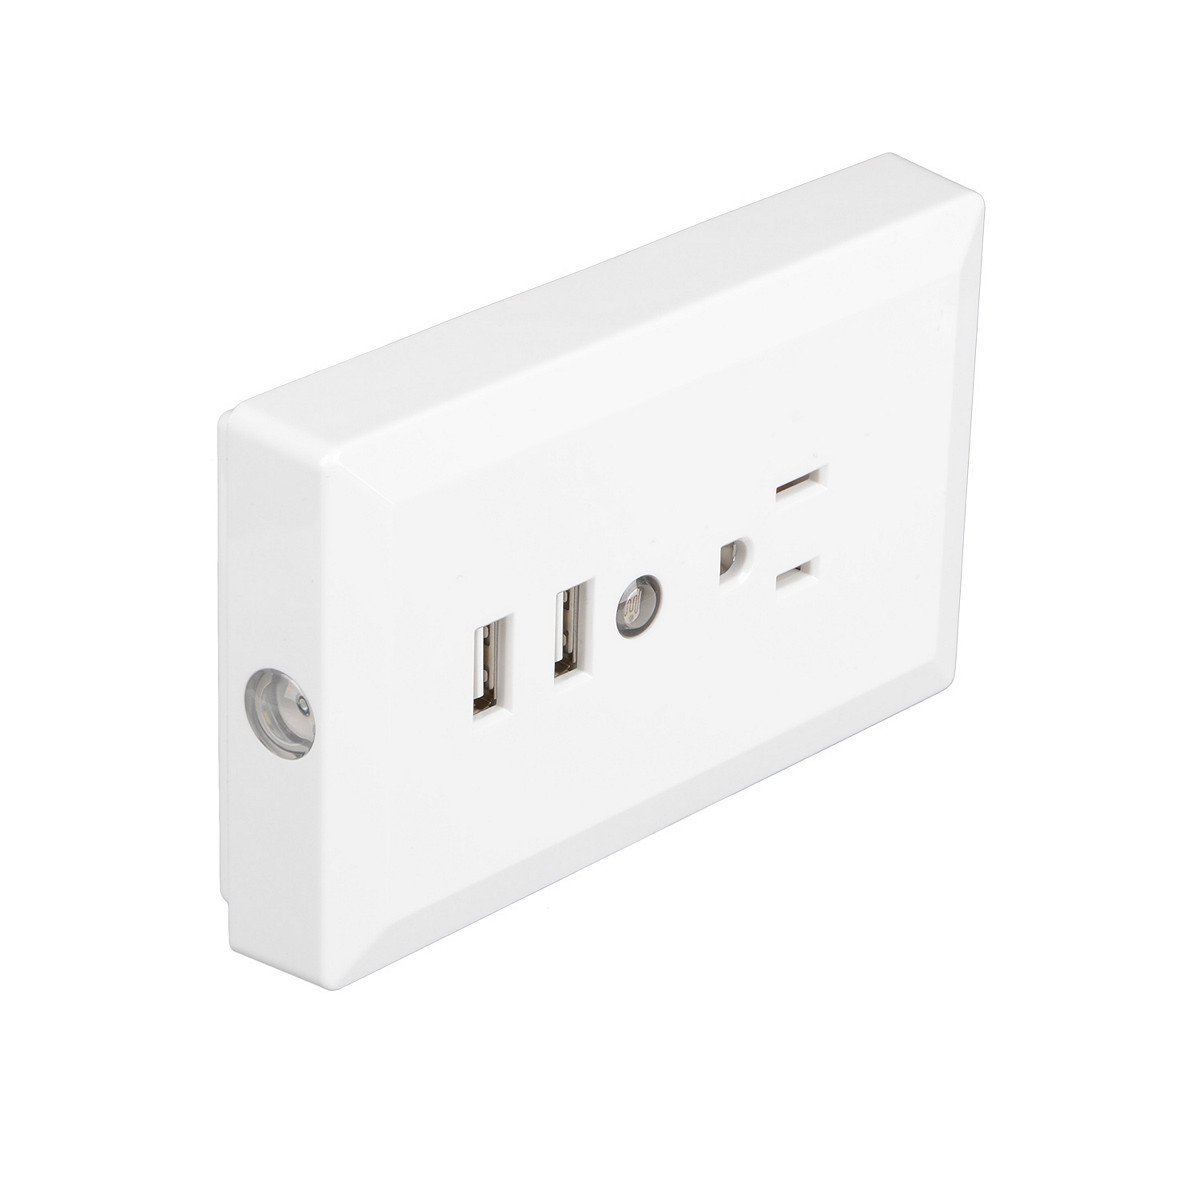 15 Amp GFCI Outlet 125 Volt Standard Outlet Socket Dual USB Ports Wall Mount Plug Power Plate With Sensor LED Light White - - Amazon.com